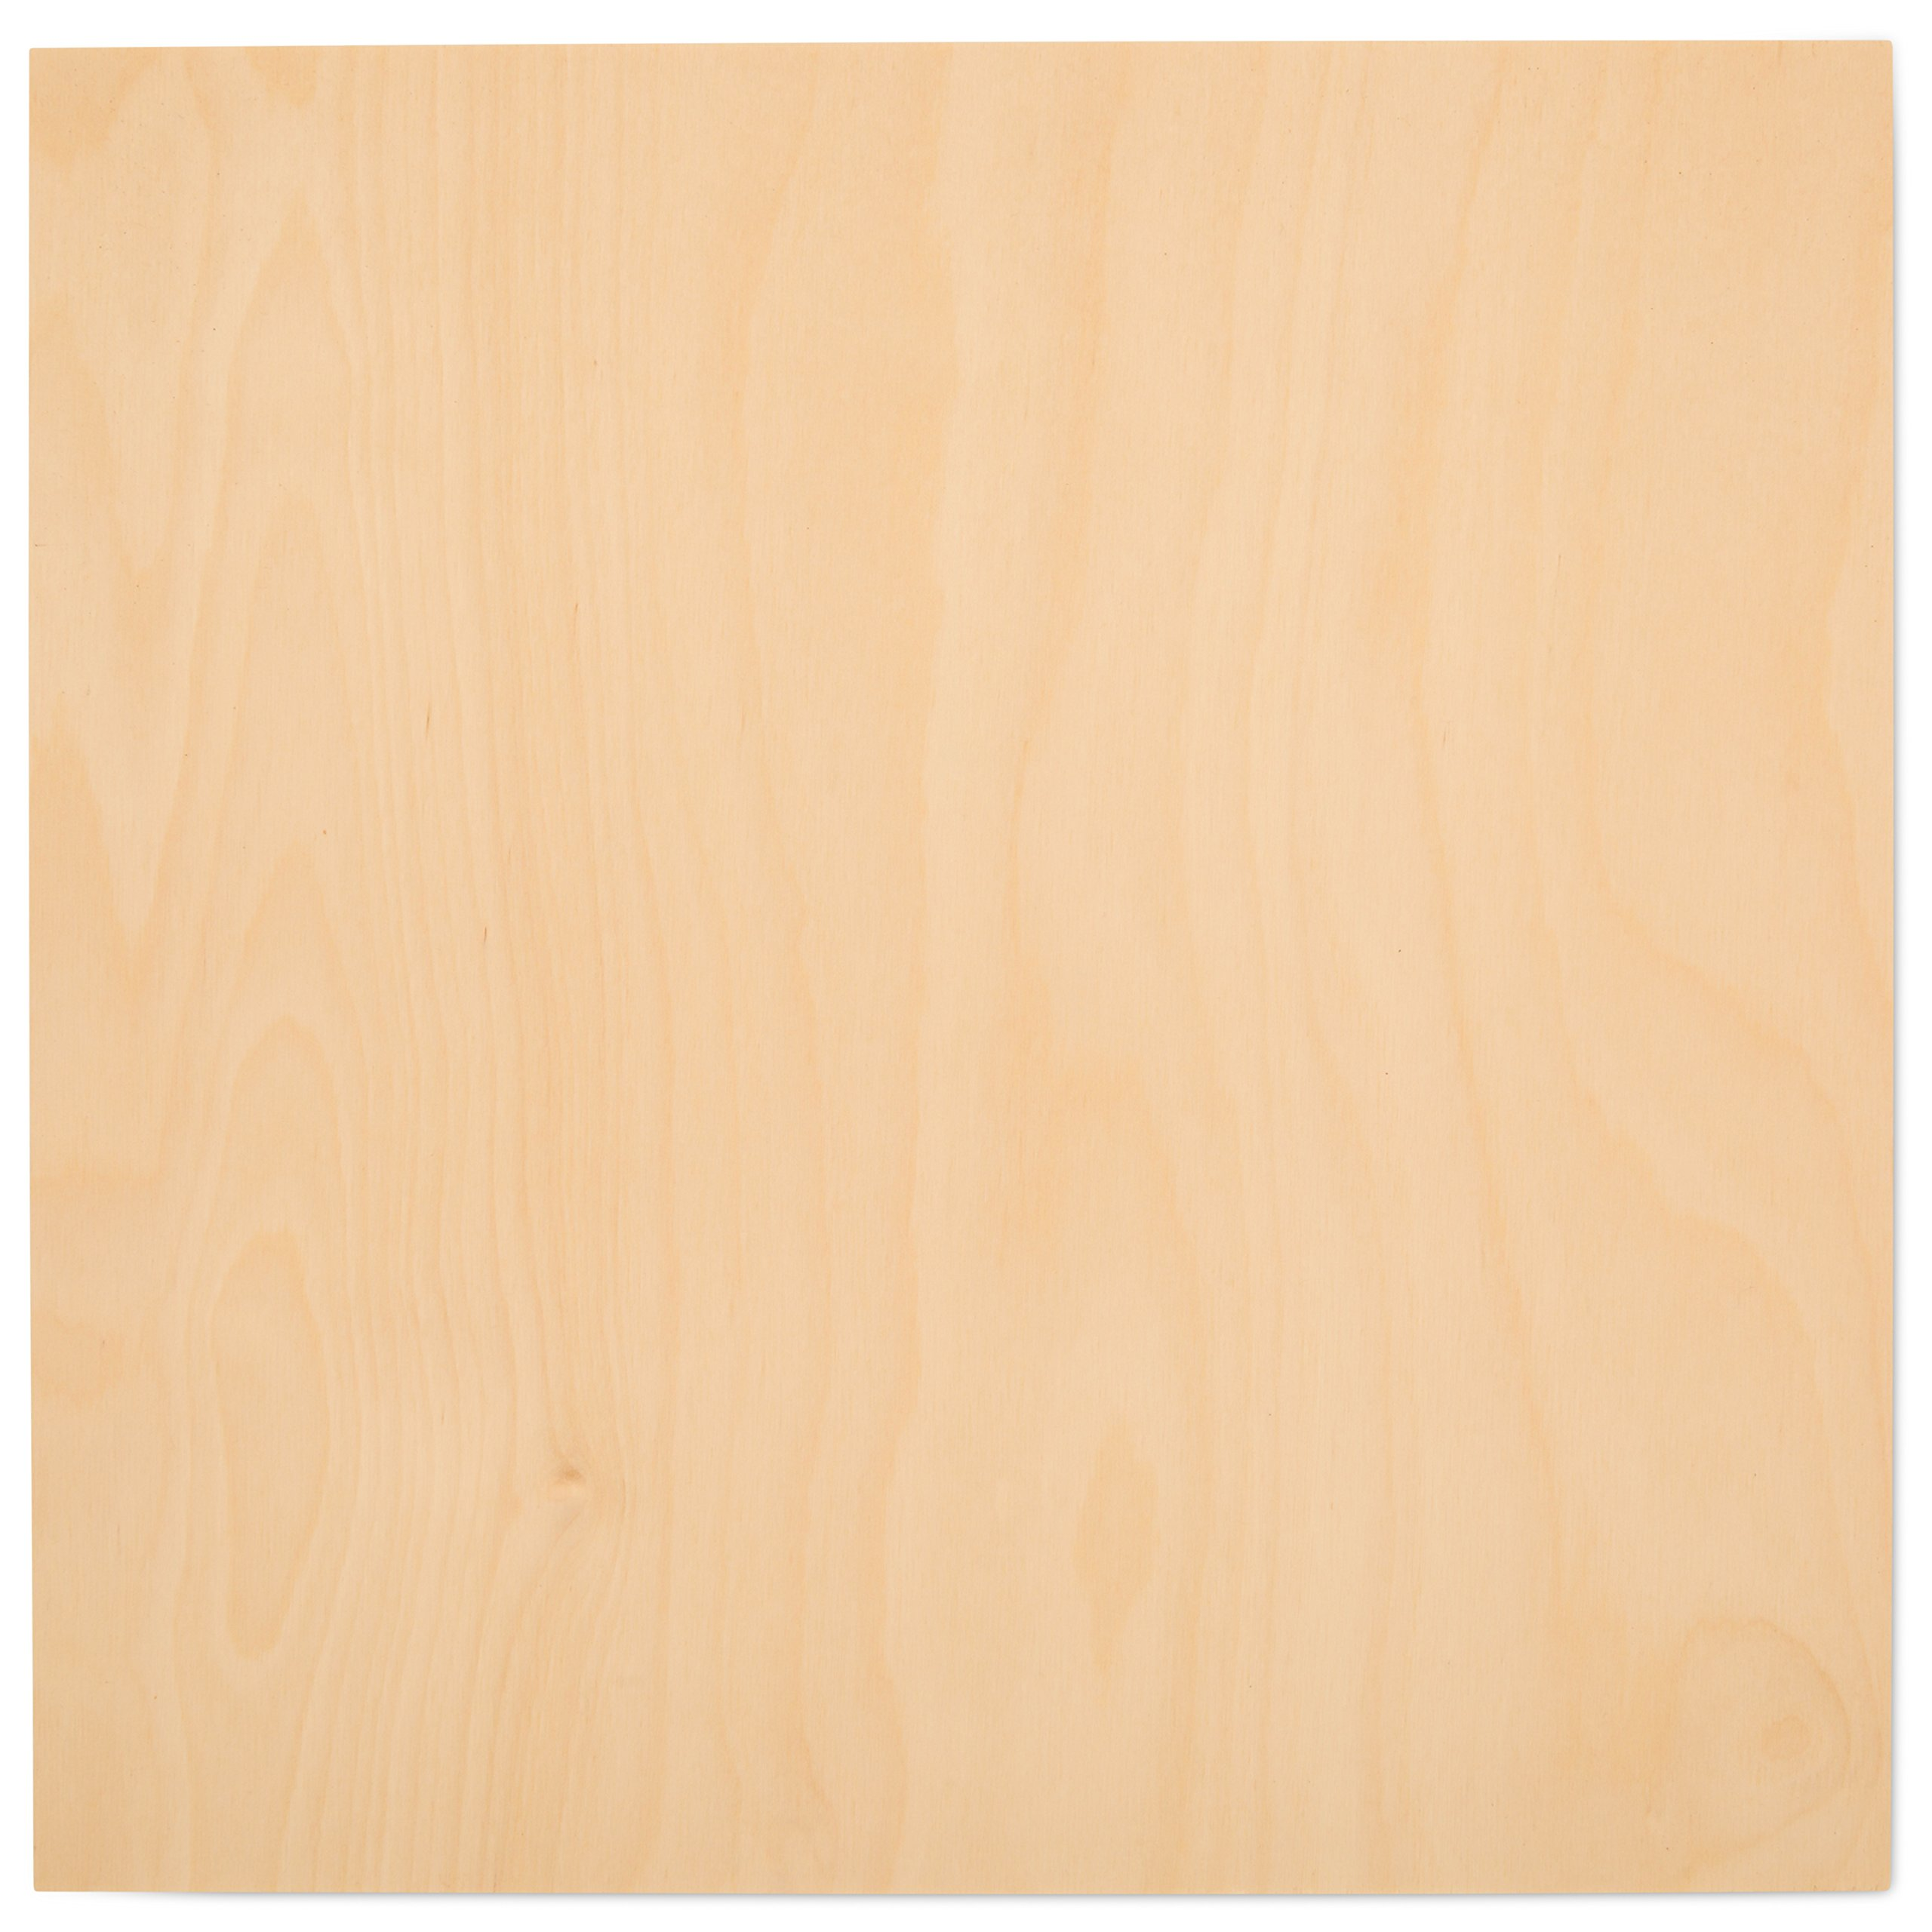 3 mm 1/8''x 12''x 12'' Premium Baltic Birch Plywood B/BB Grade - 8 Flat Sheets By Woodpeckers